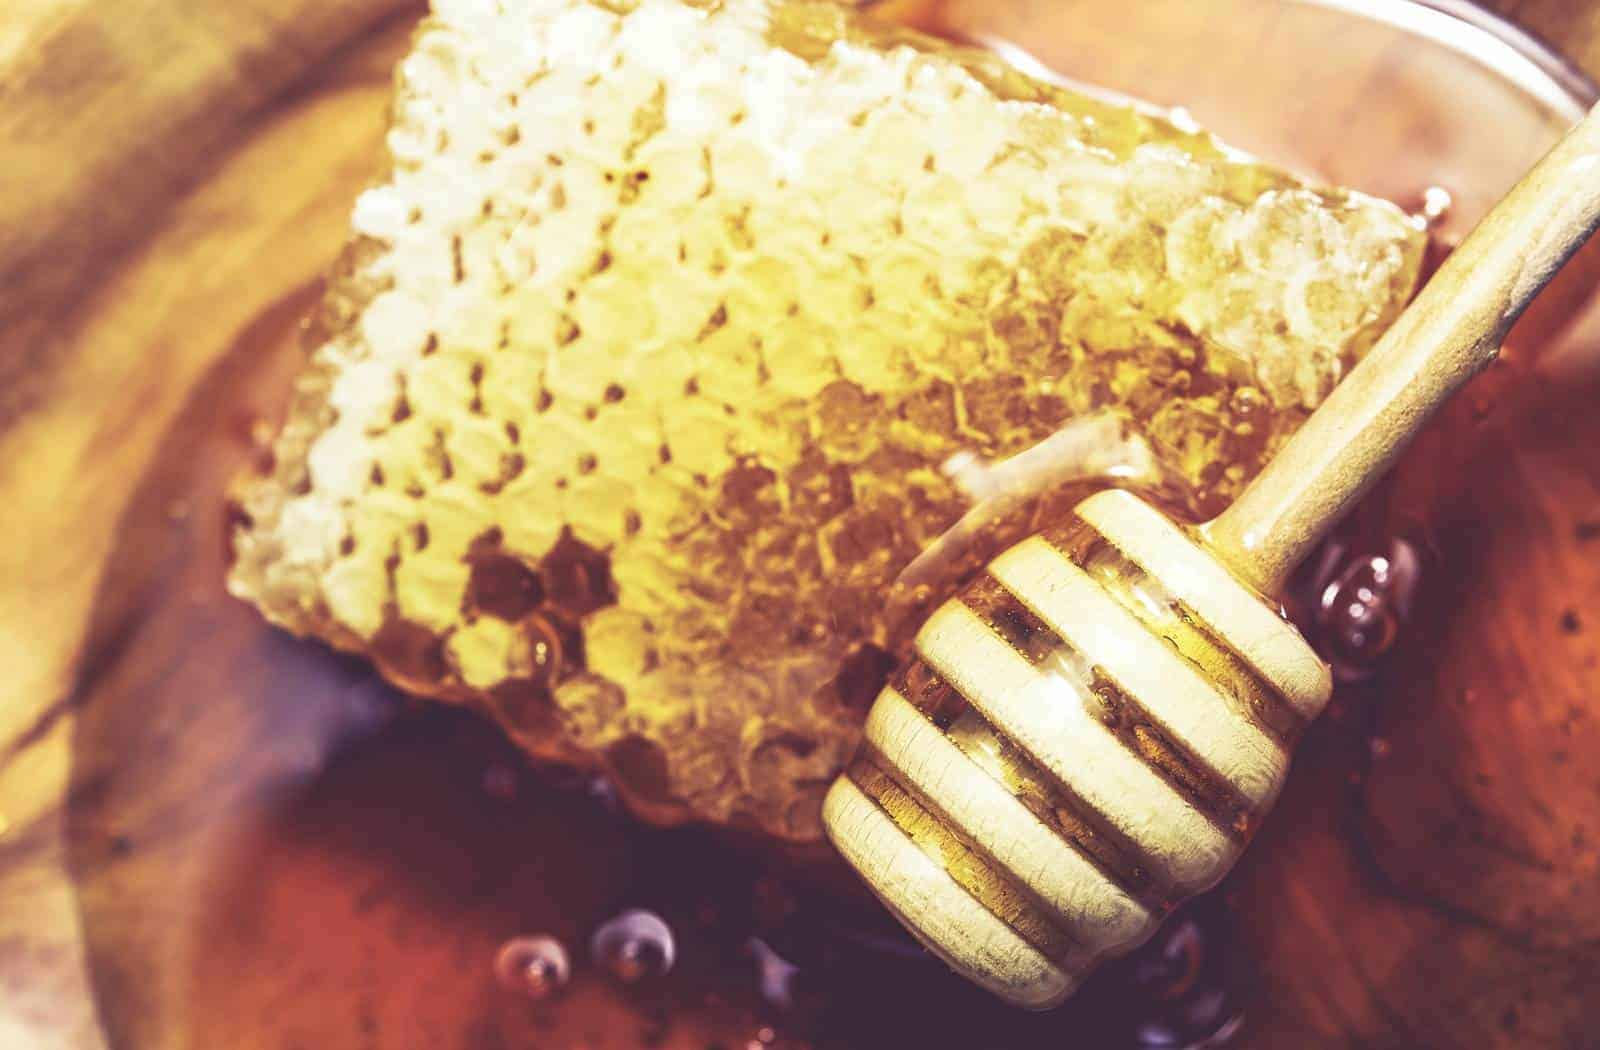 Can honey make you fat?